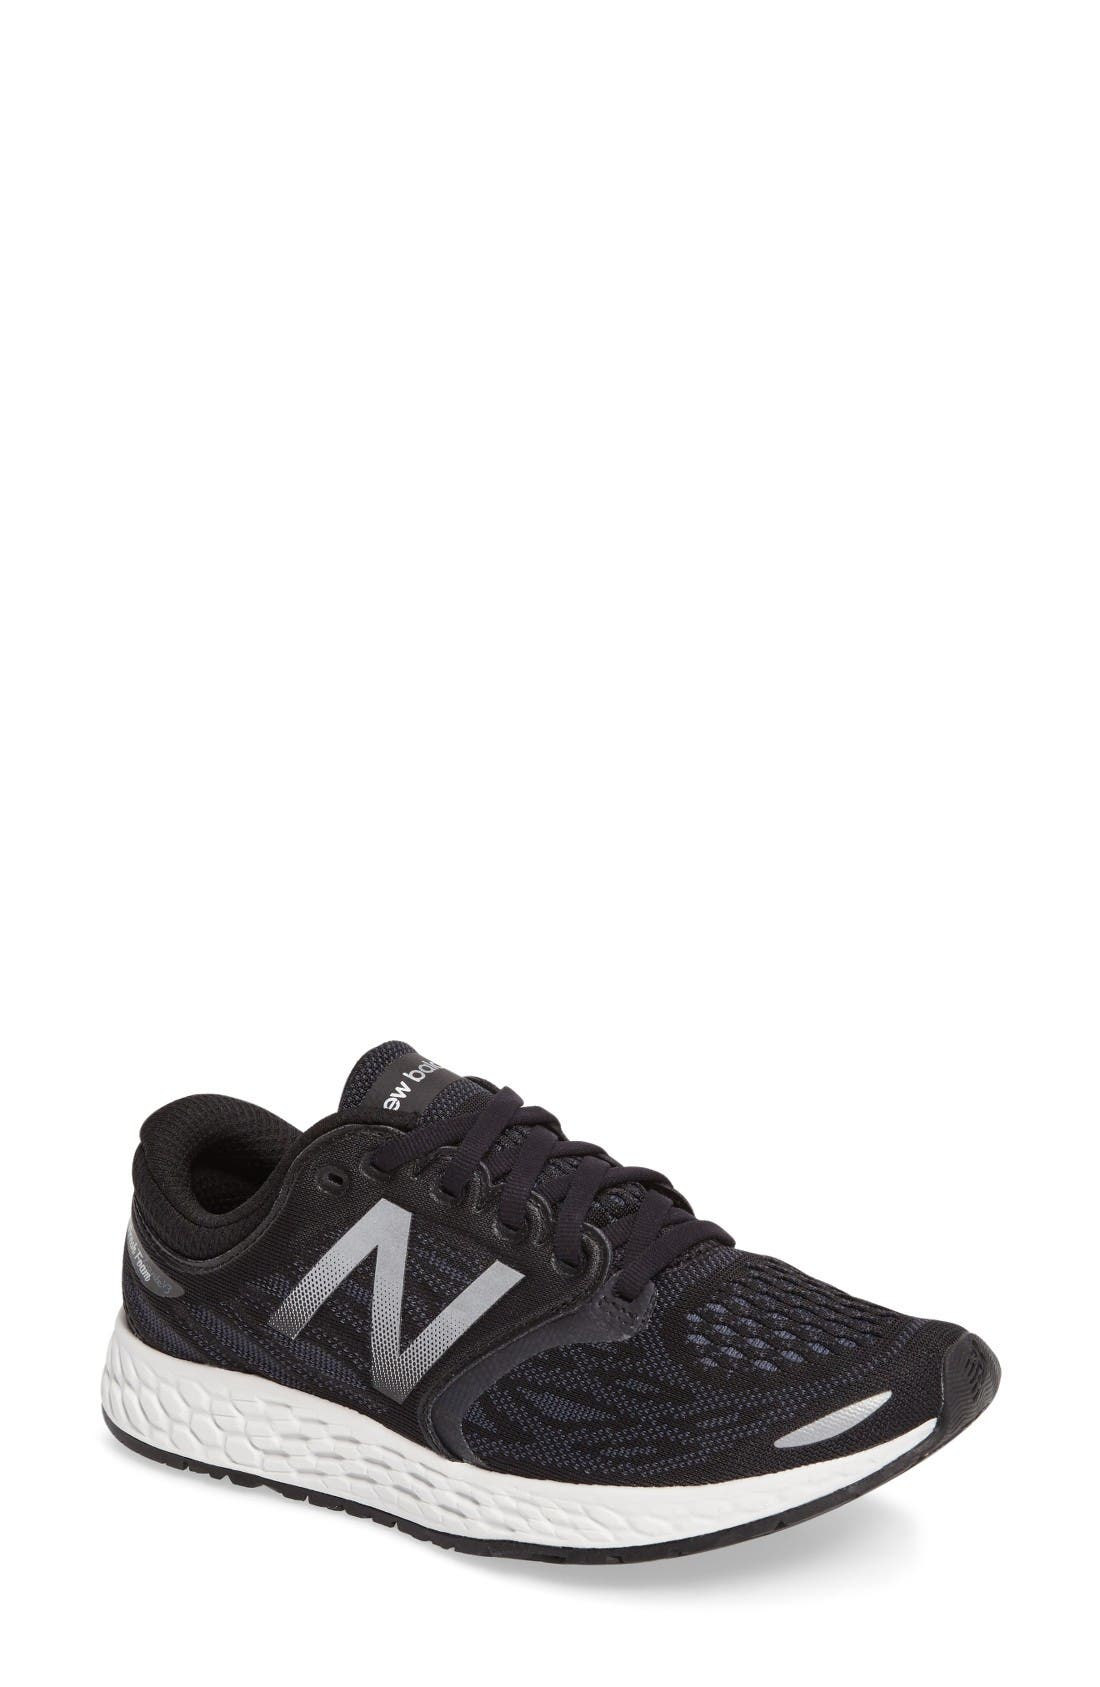 NEW BALANCE Zante V3 Running Shoe